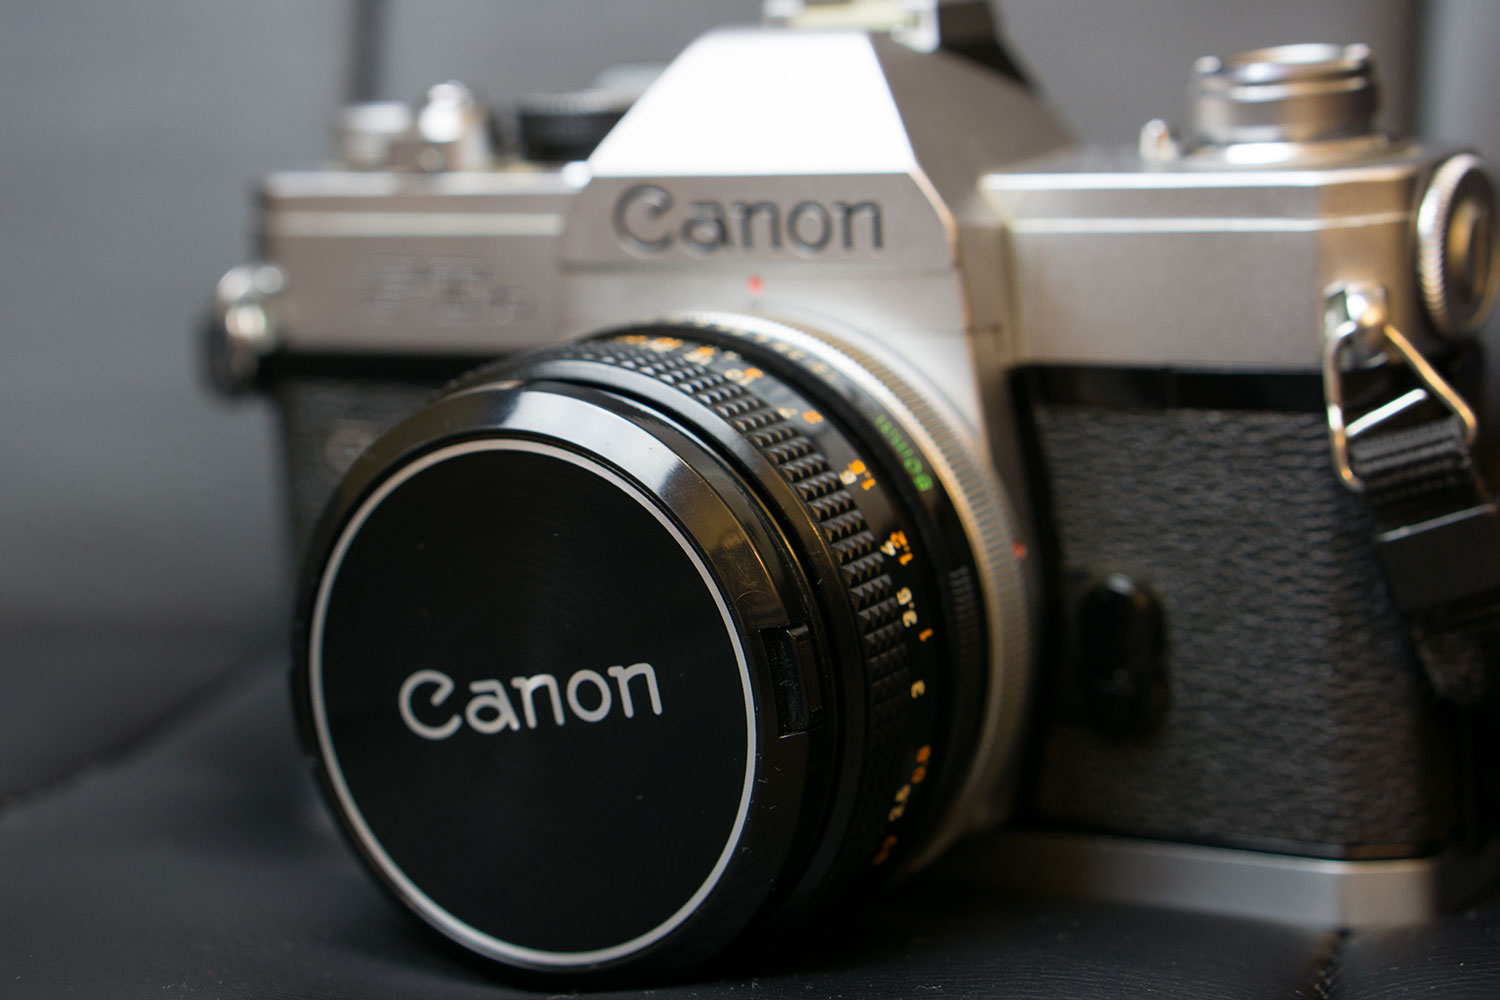 This was my first film camera - a Canon FTb. I still own it and use it today.